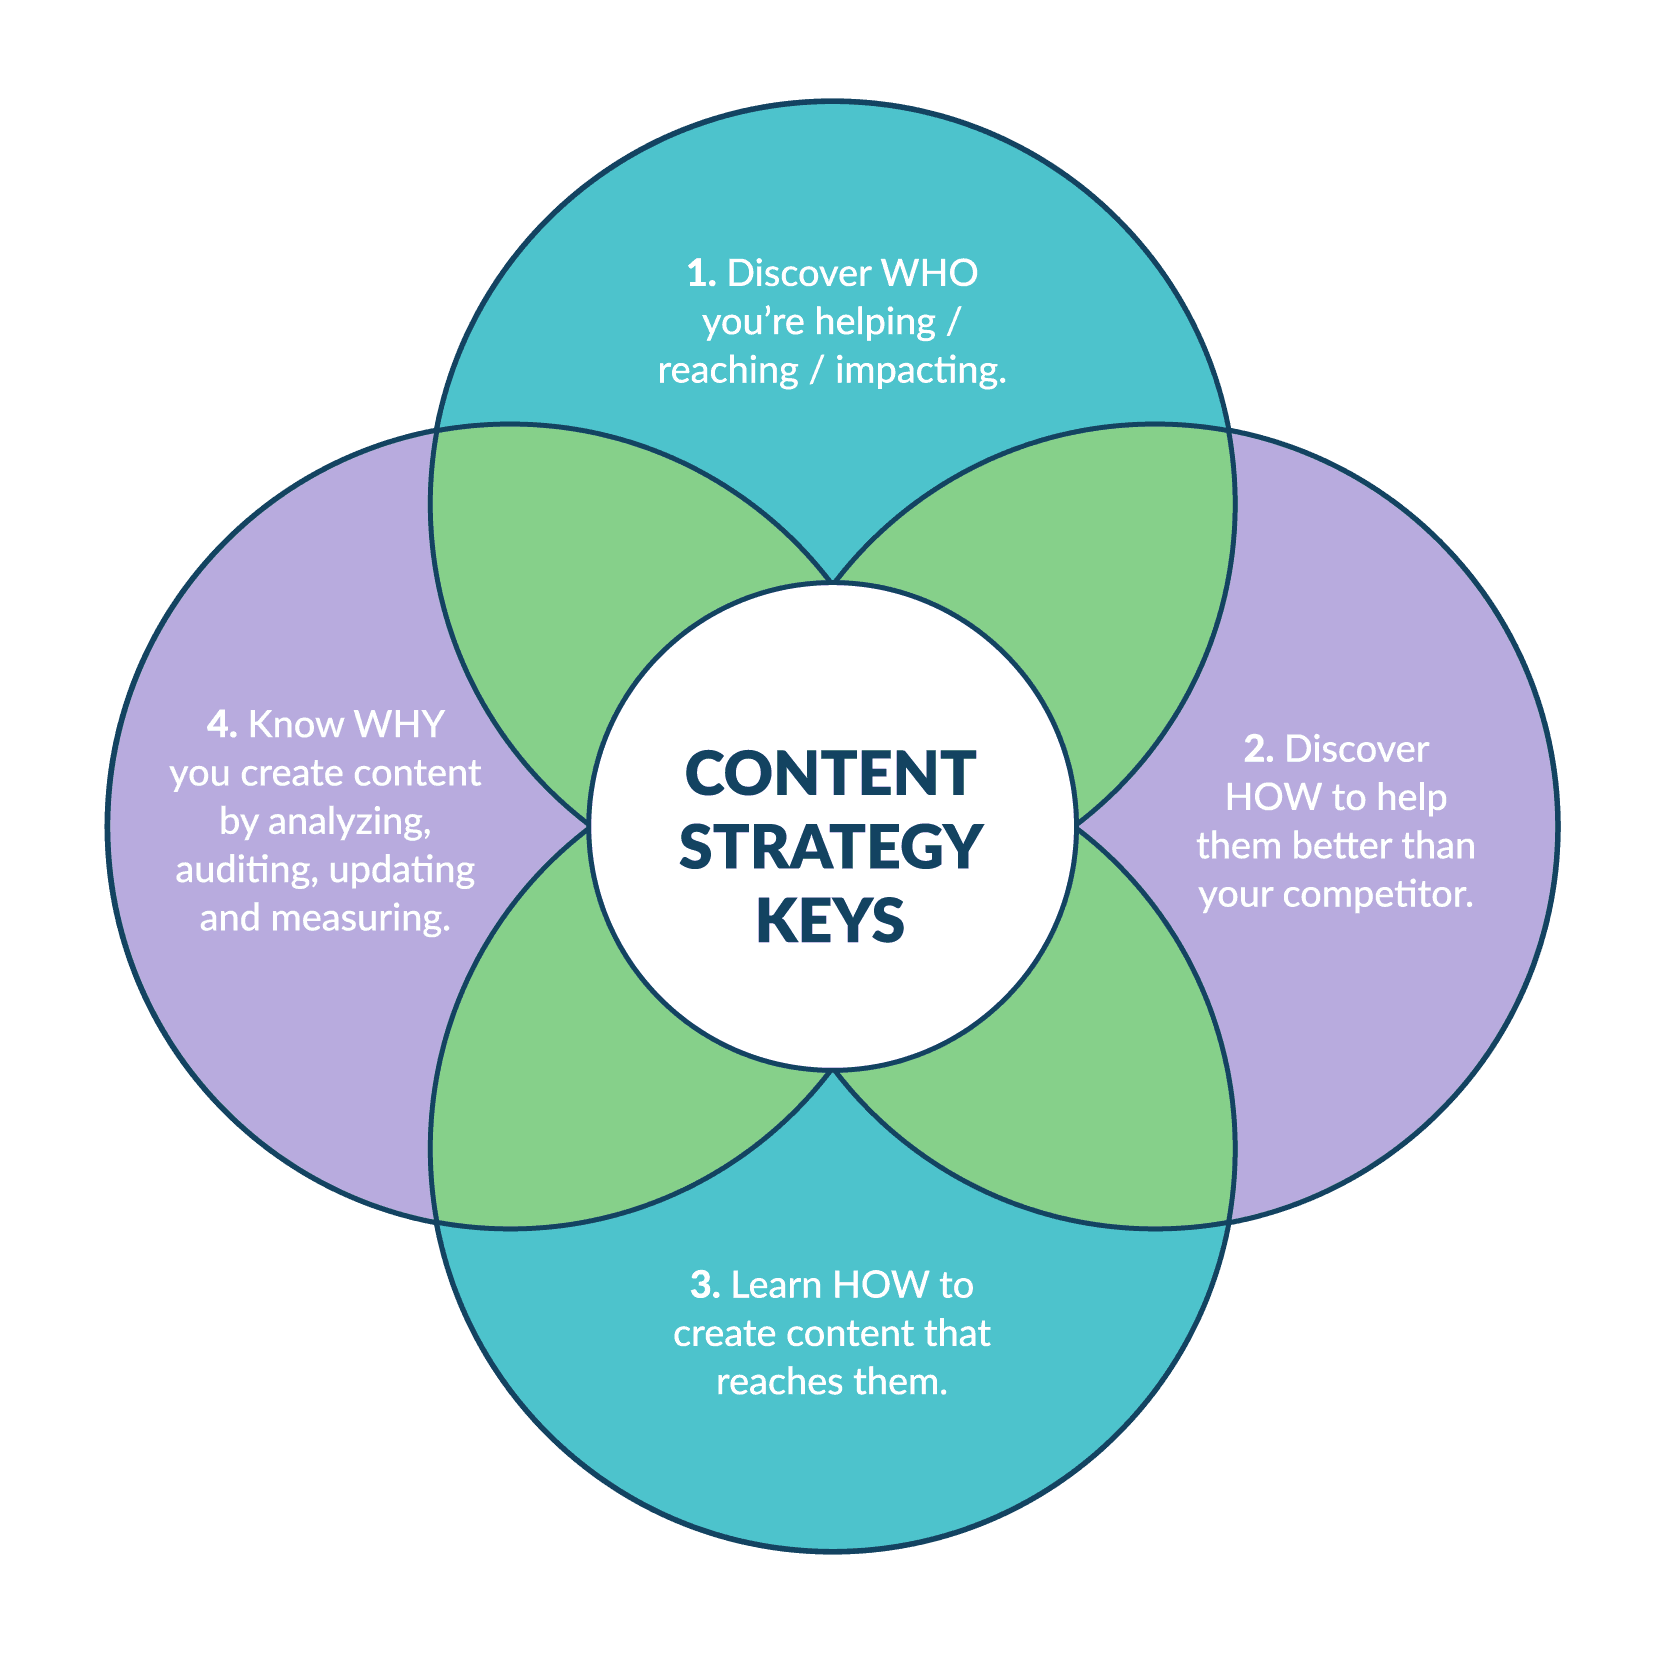 content strategy keys